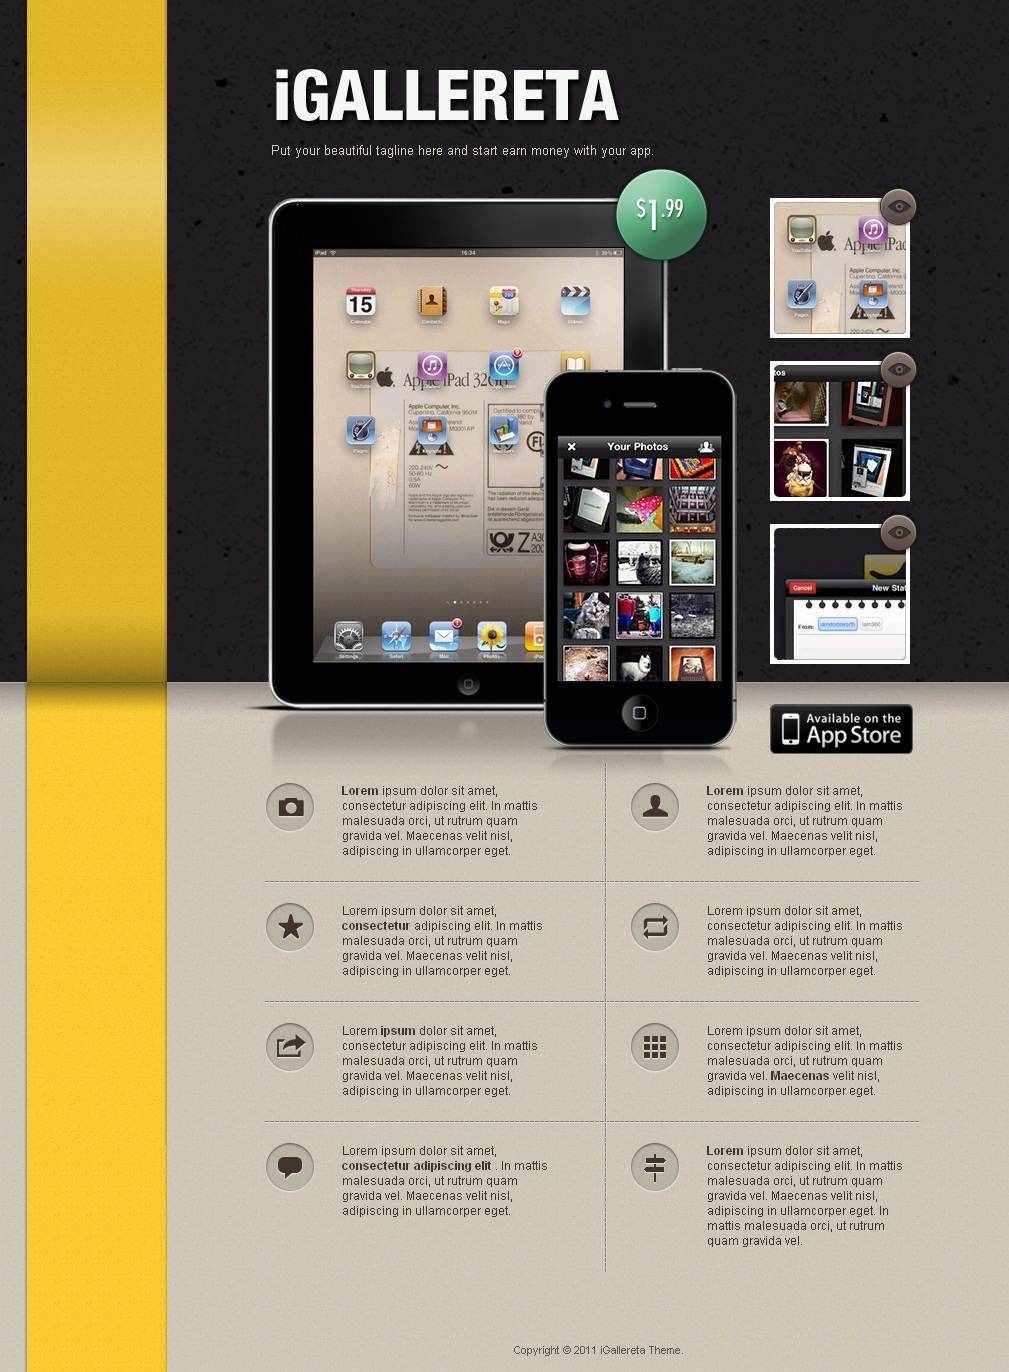 IGallereta - Mobile App Sales Page - an iGallereta template preview using the black header background and a yellow ribbon.